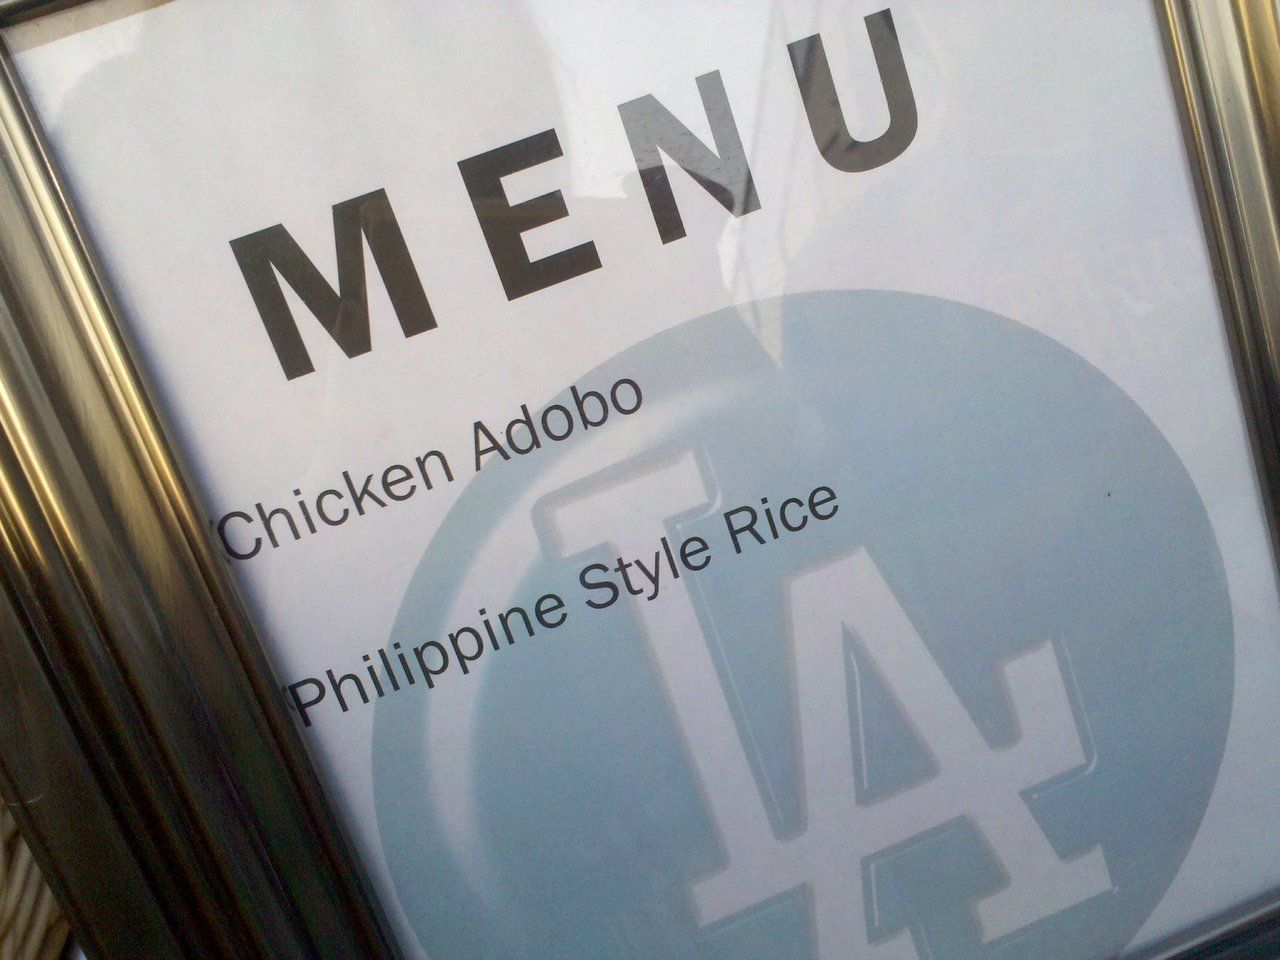 Apparently by chicken adobo they mean teriyaki chicken. YOU CAN'T FOOL ME.